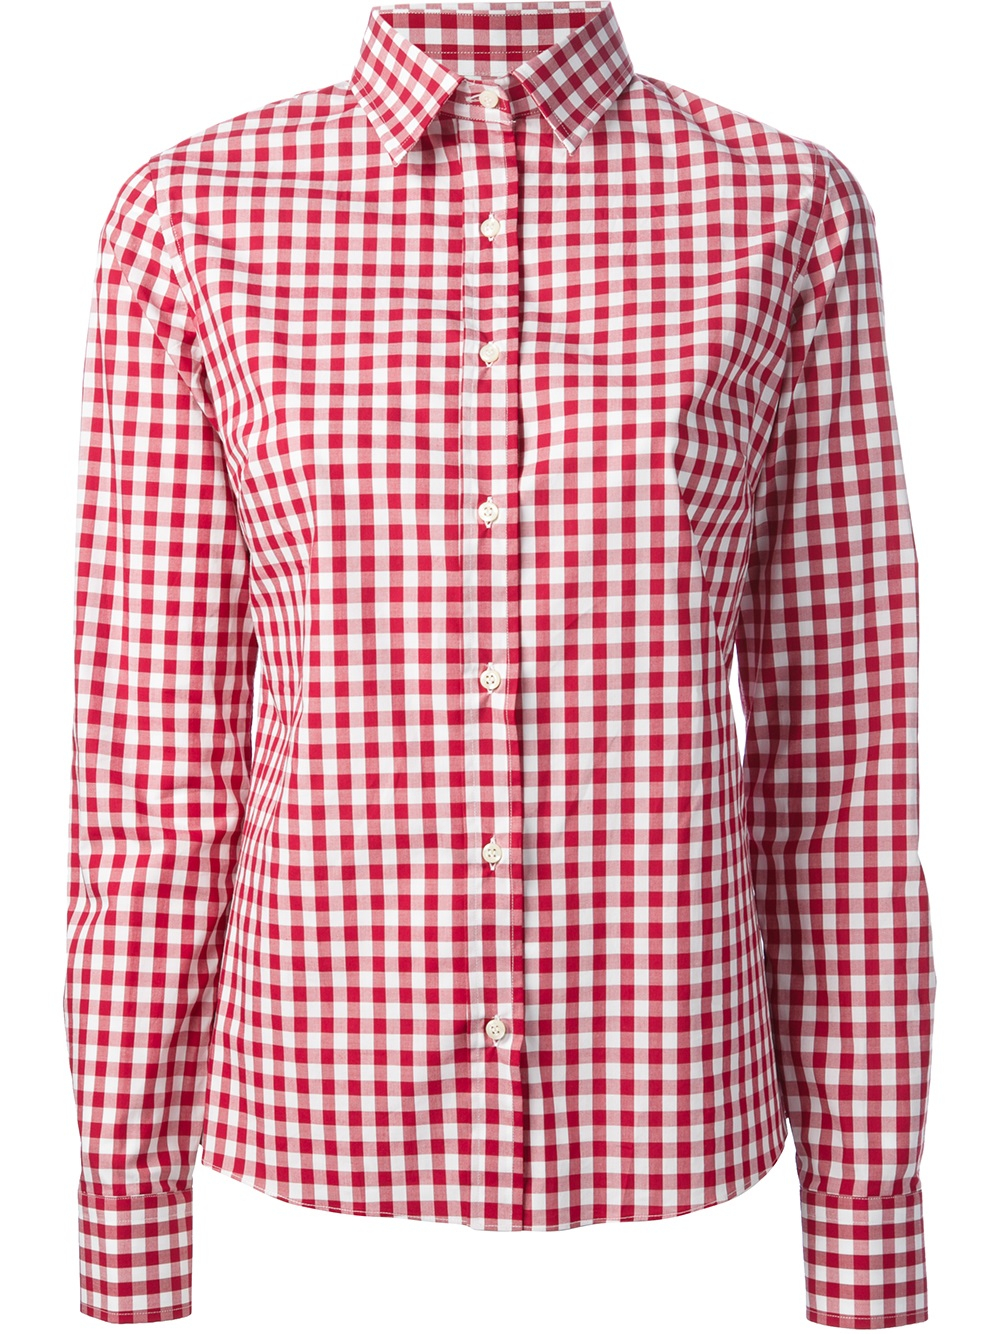 Womens Gingham Shirts